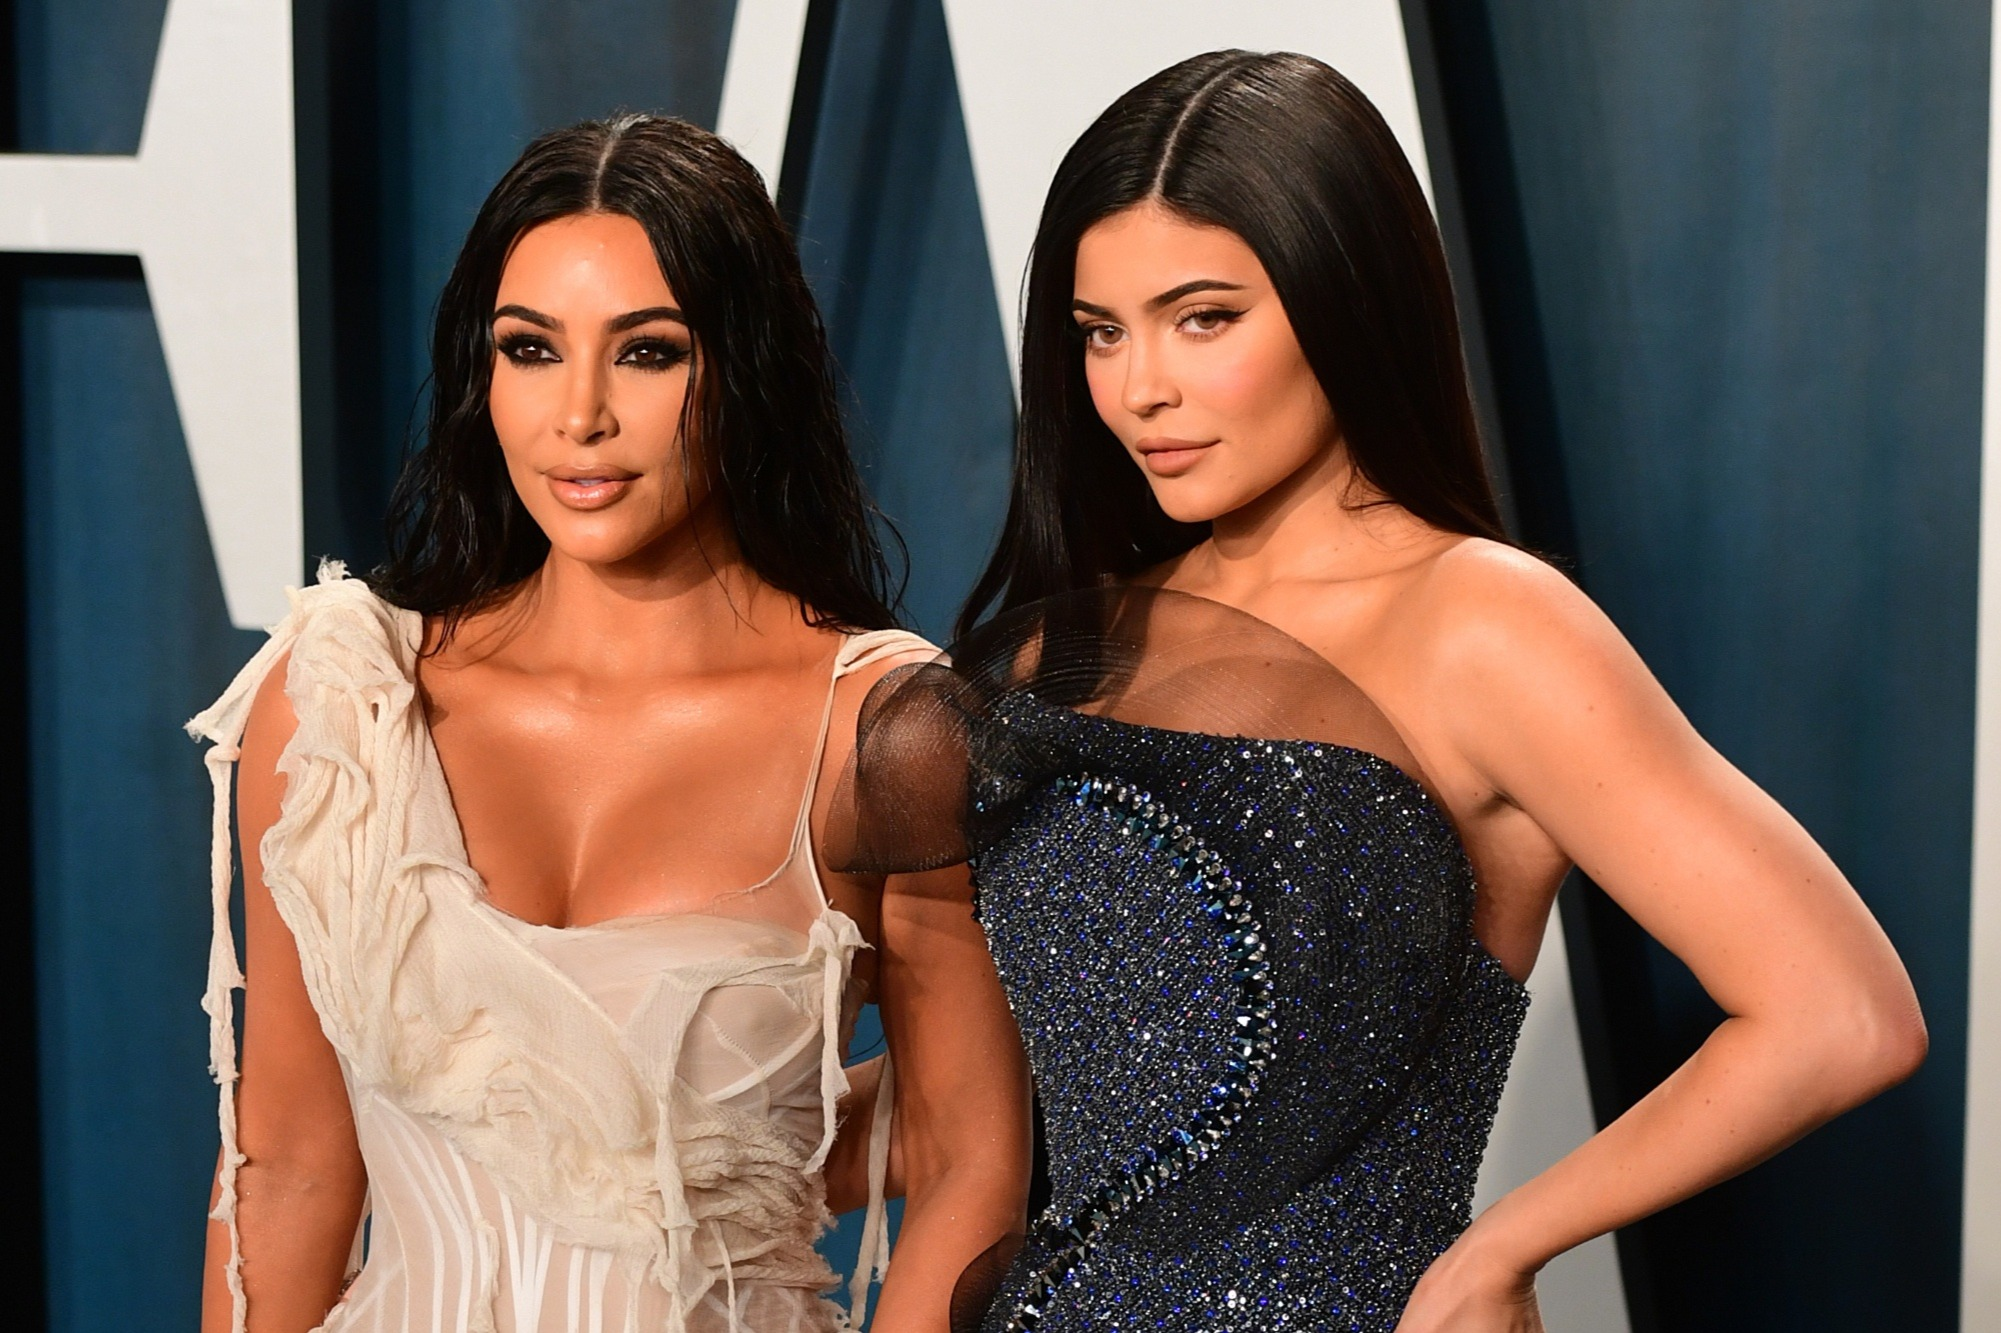 Kris Jenner ended 'KUWTK' after Kim and Kylie threatened to quit: report